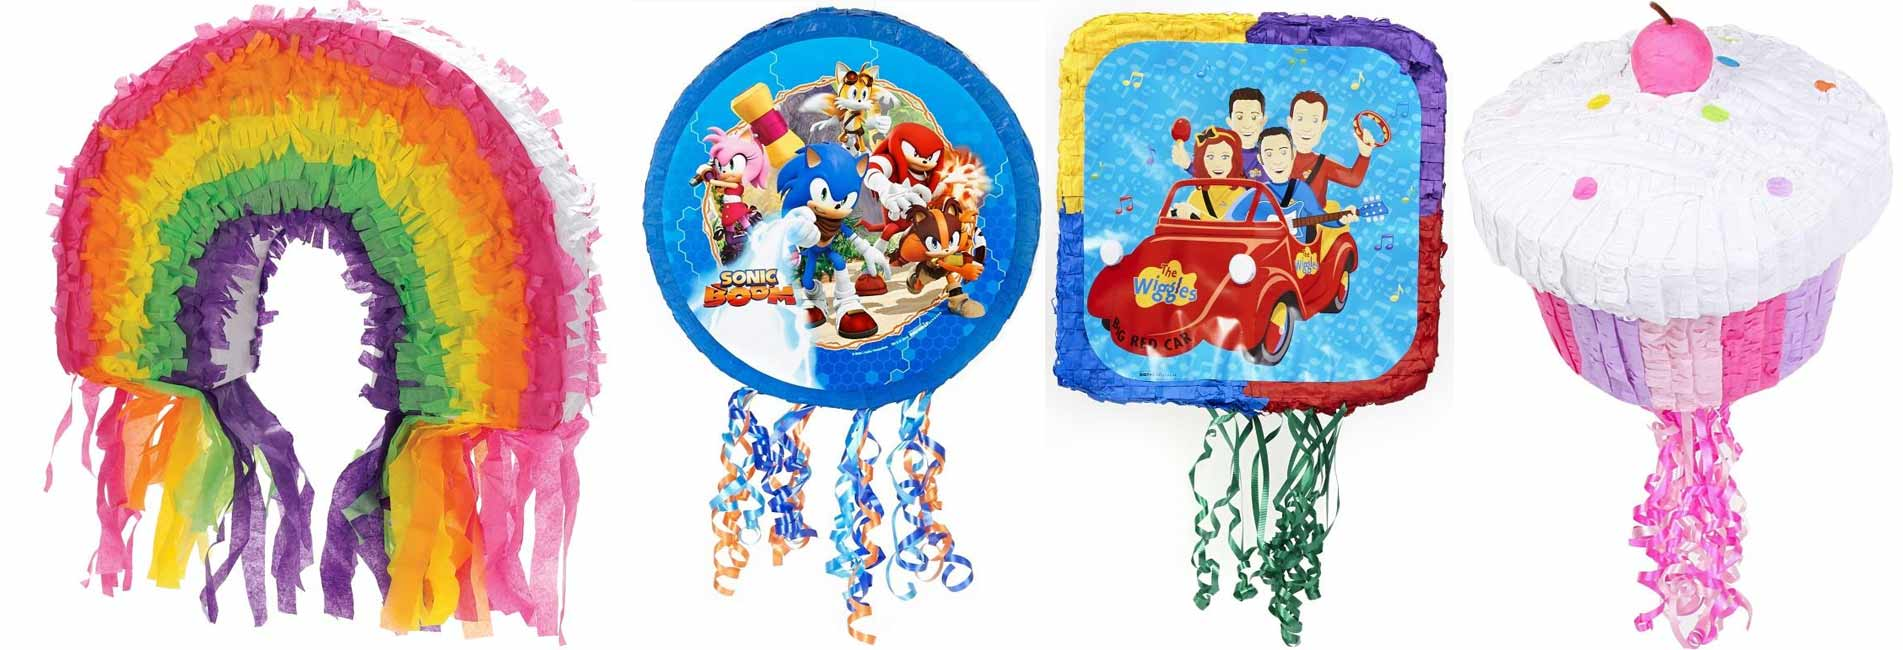 Childrens Party Supplies Drummoyne, Kids Party Themes Concord, Party Management Haberfield